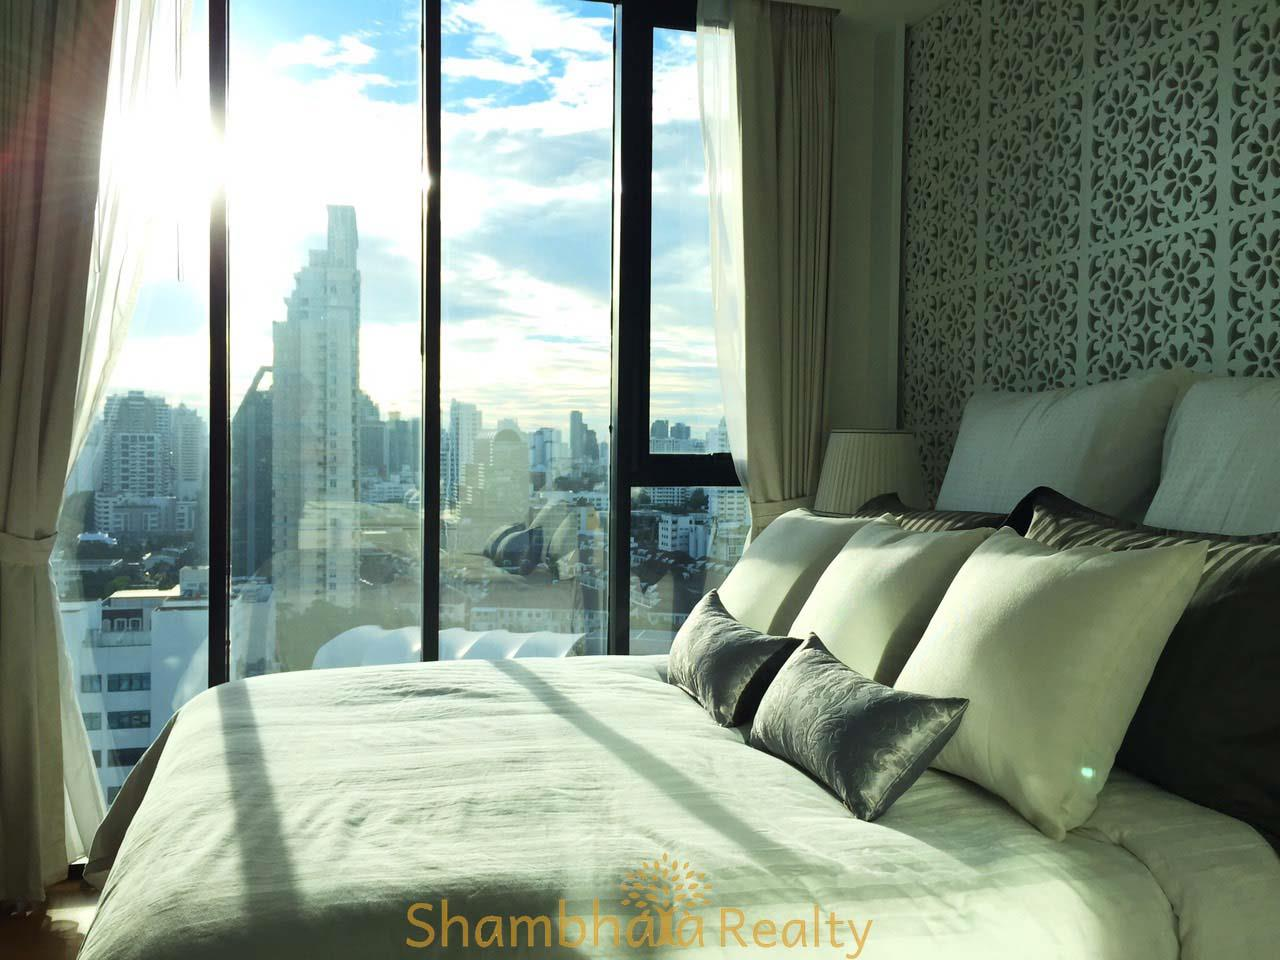 Shambhala Realty Agency's The Alcove Thonglor 10 Condominium for Sale/Rent in Sukhumvit 55 ( Thonglor 10 ) 10